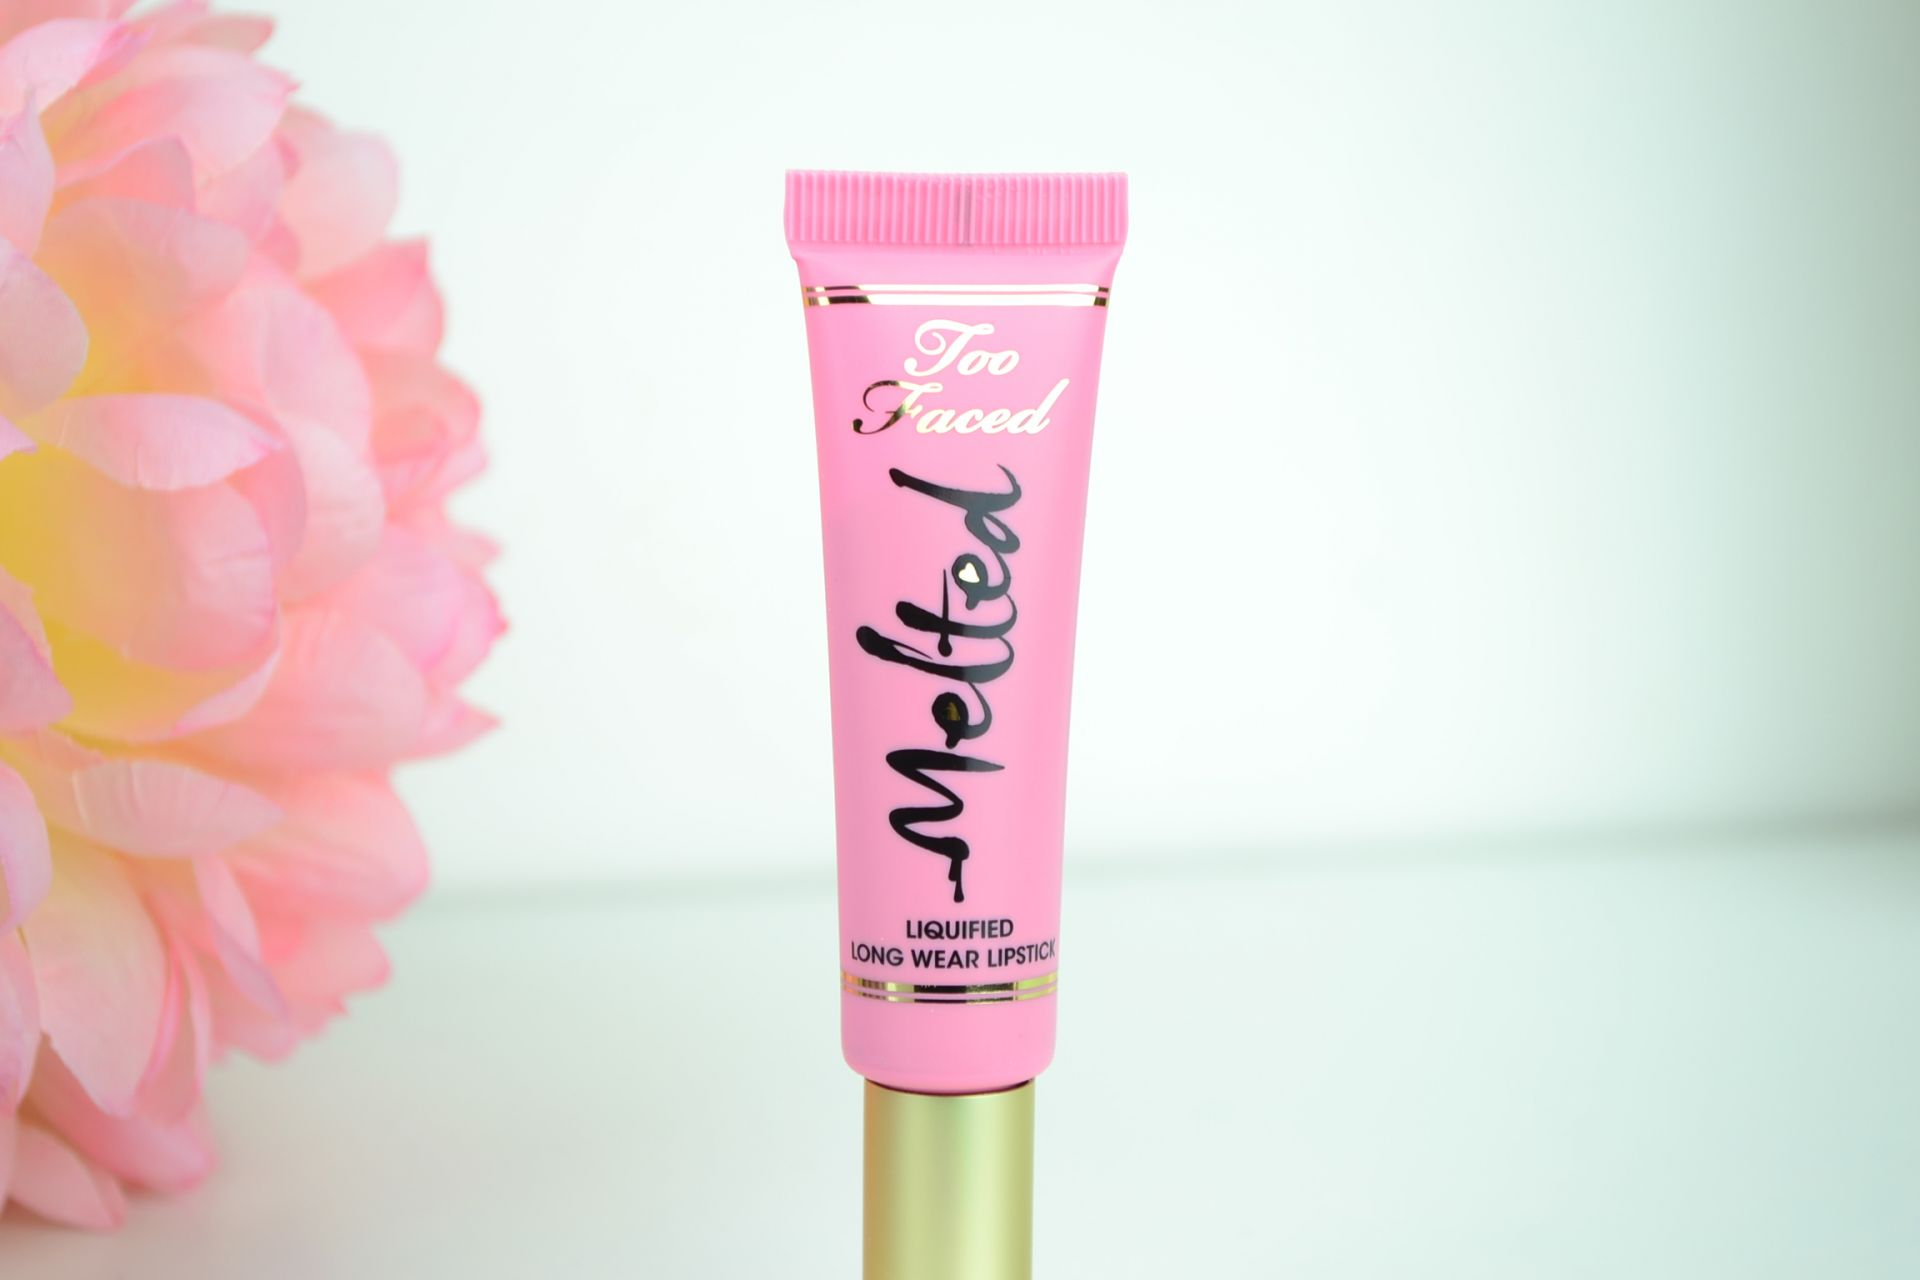 too-faced-melted-liquified-long-lasting-lipstick-review